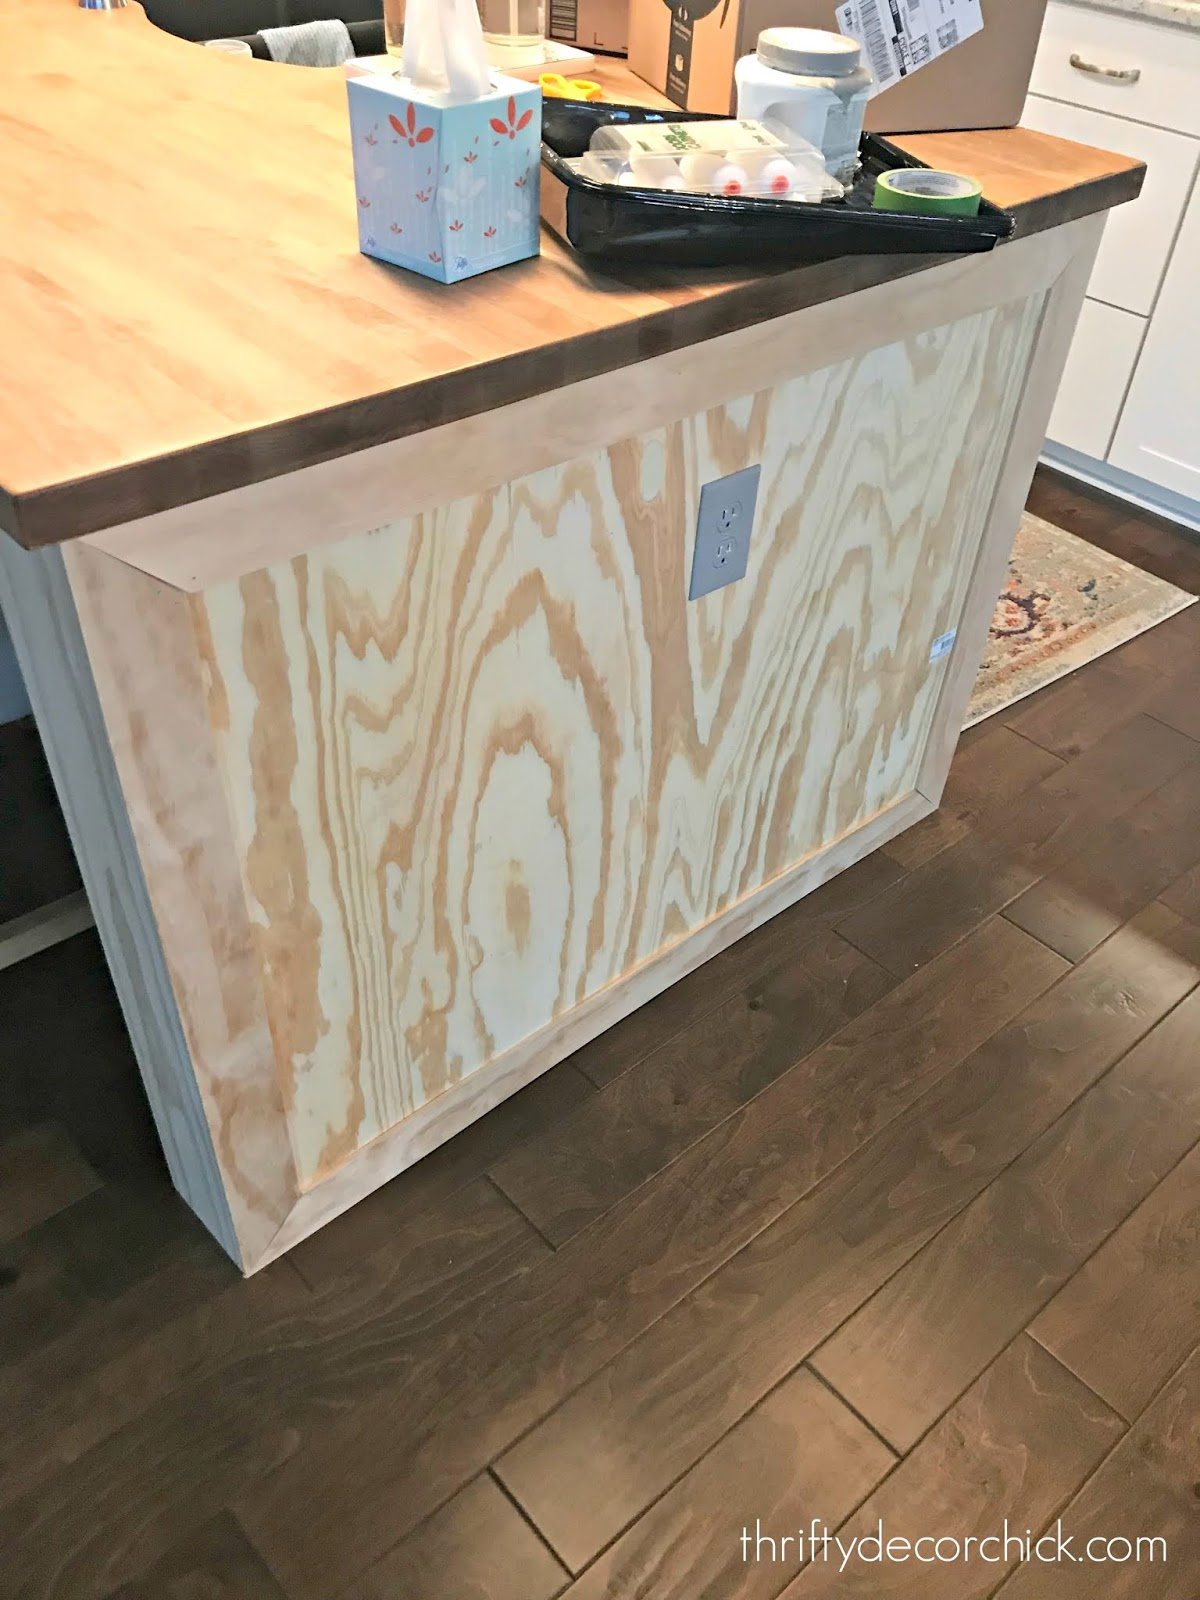 How to extend sides of island with cabinets